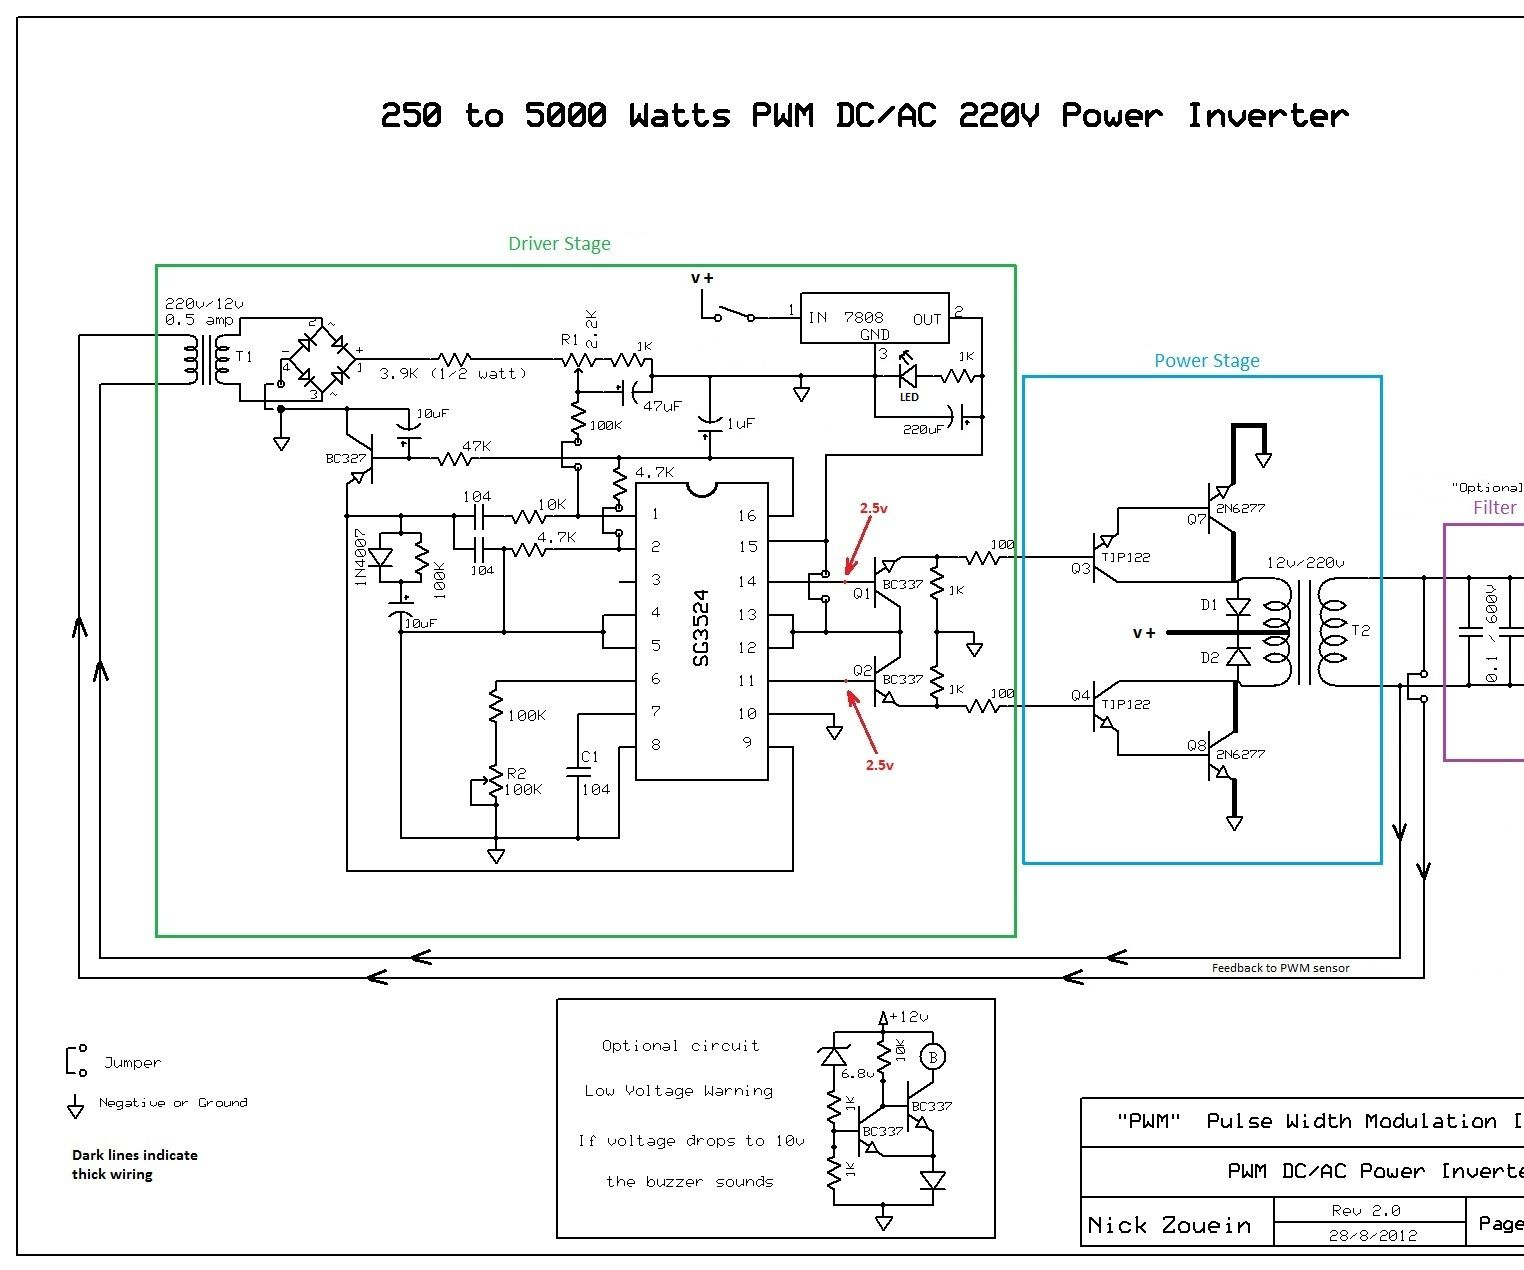 250 to 5000 watts pwm dc ac 220v power inverter ac inverter circuit diagram likewise solar panel micro inverter wiring [ 1524 x 1270 Pixel ]